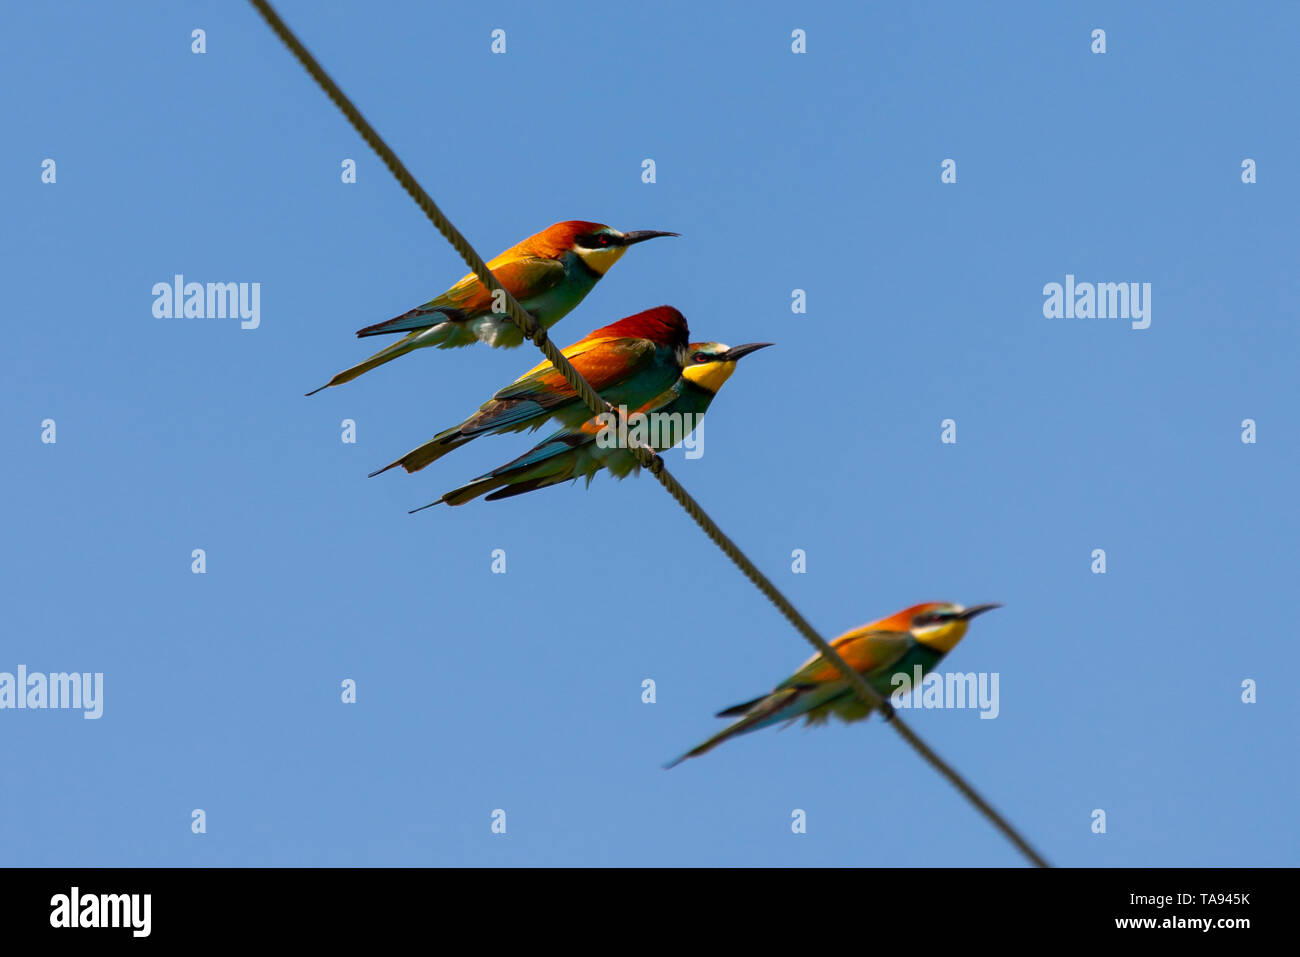 Bee-eater, European bee-eater bird on power line wire. - Stock Image